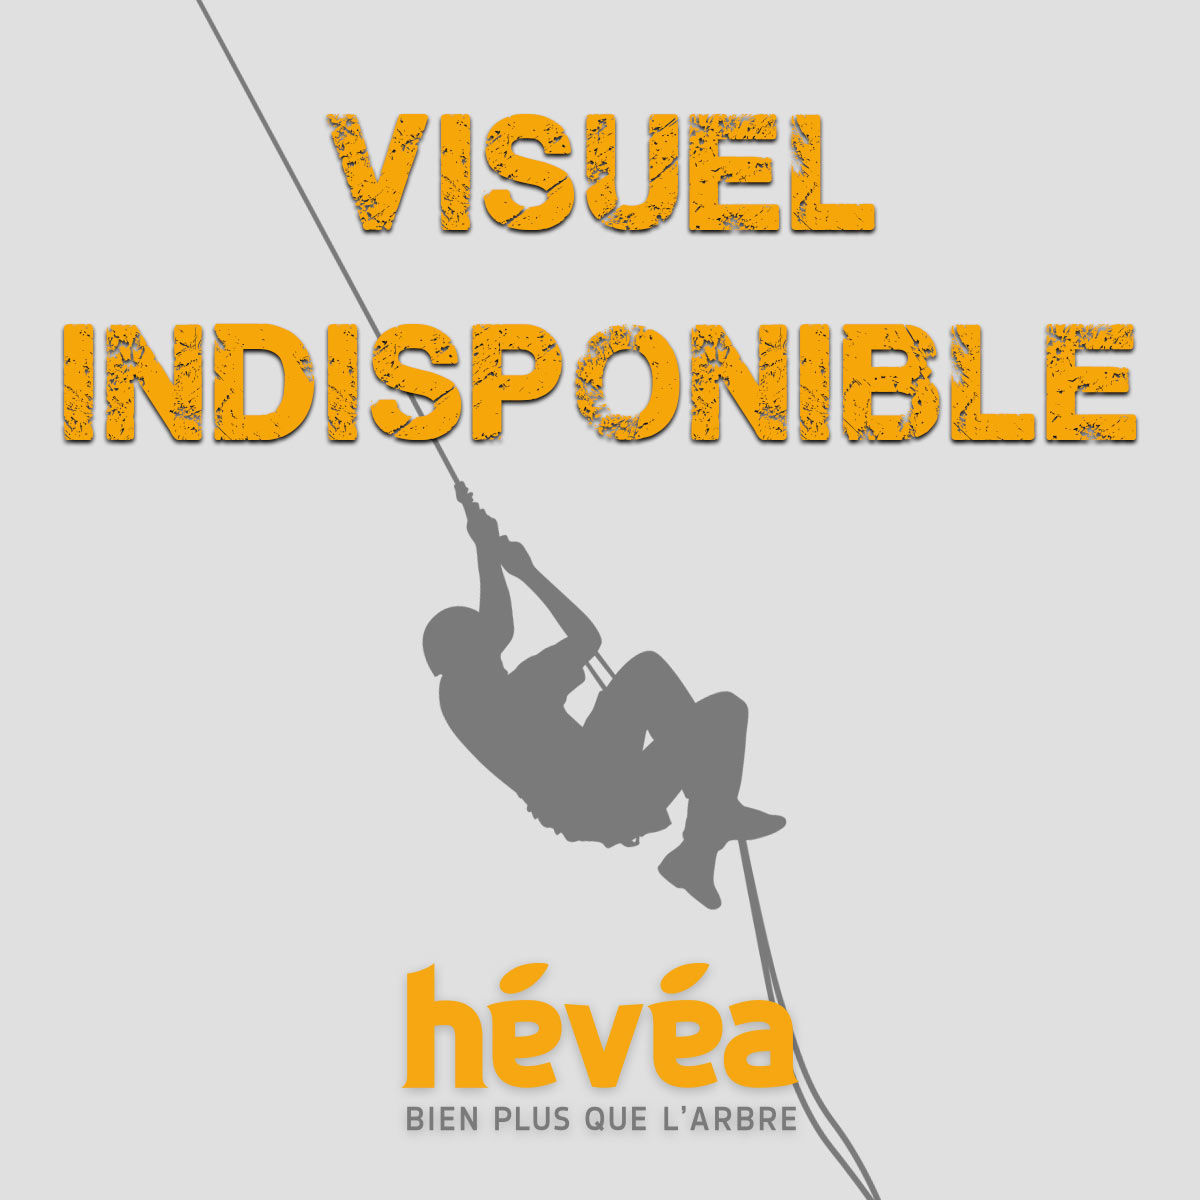 Longe de maintien ADJUSTAIR Béal